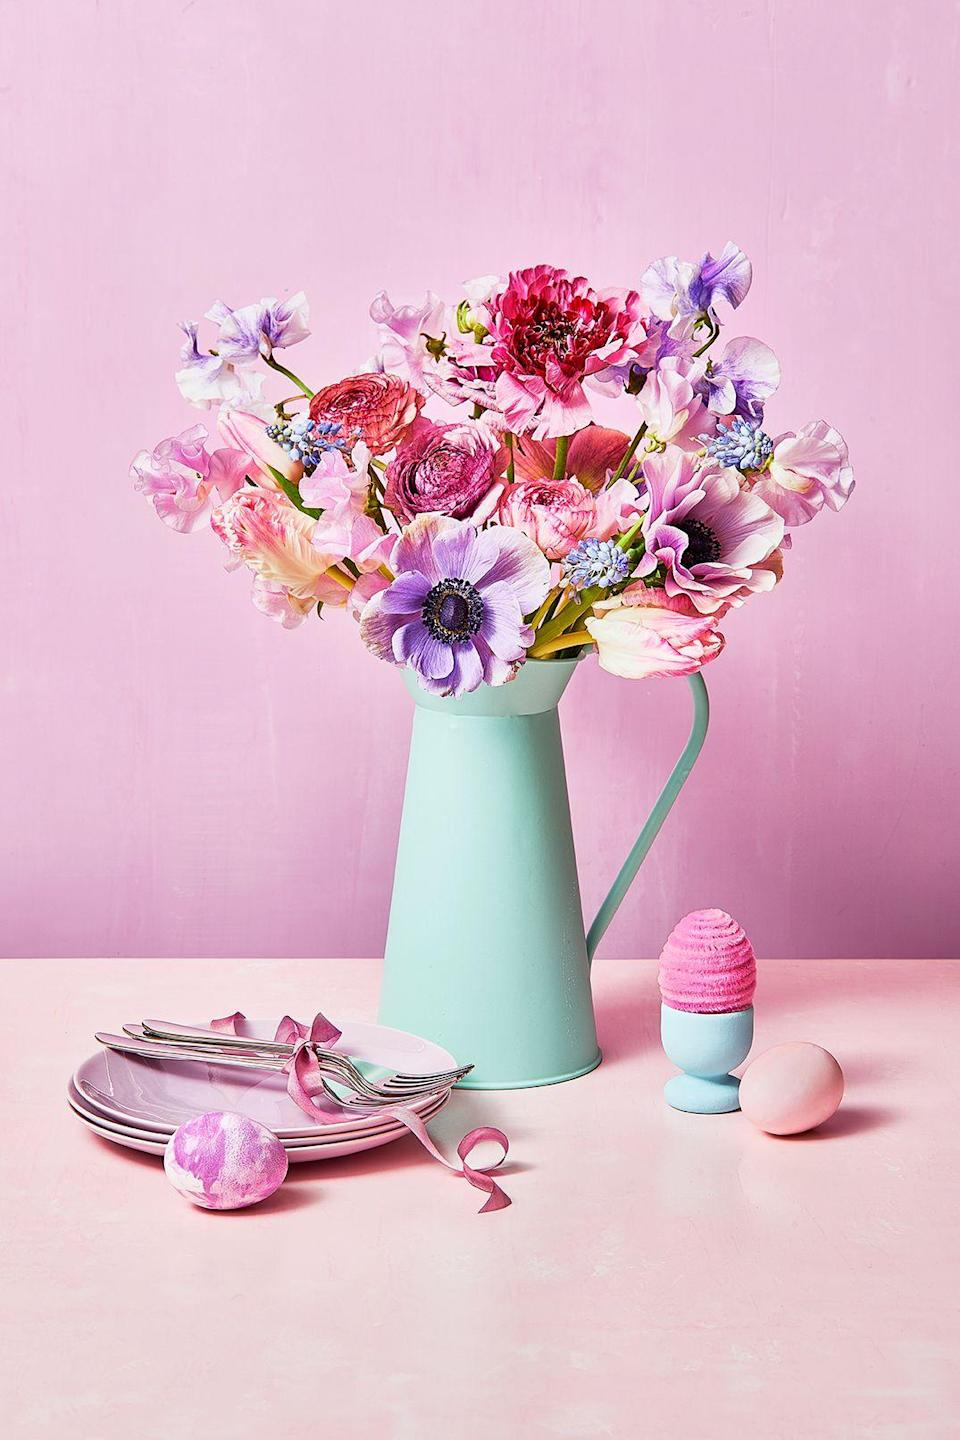 """<p>There's no better time to celebrate the spring season than Easter. Of course, the holiday has <a href=""""https://www.goodhousekeeping.com/holidays/easter-ideas/g191/history-easter-traditions/"""" rel=""""nofollow noopener"""" target=""""_blank"""" data-ylk=""""slk:religious roots"""" class=""""link rapid-noclick-resp"""">religious roots</a> that should be acknowledged, but it's also about saying goodbye to the bitter cold and snow, and welcoming all that Mother Nature has to offer for the warmer months ahead. In other words, if you're a <a href=""""https://www.goodhousekeeping.com/home/decorating-ideas/g30433830/spring-decorating-ideas/"""" rel=""""nofollow noopener"""" target=""""_blank"""" data-ylk=""""slk:decor enthusiast"""" class=""""link rapid-noclick-resp"""">decor enthusiast</a>, it's likely your cue to start getting creative with Easter flowers. </p><p>This year, go for a <a href=""""https://www.goodhousekeeping.com/home/decorating-ideas/g30693064/spring-centerpieces/"""" rel=""""nofollow noopener"""" target=""""_blank"""" data-ylk=""""slk:statement centerpiece"""" class=""""link rapid-noclick-resp"""">statement centerpiece</a> that showcases the season's best flowers, whether it's lovely lilies, tulips, or even a few unexpected DIY paper creations. But once you settle on the right blooms, don't overlook the many ways you can choose to display them. From <a href=""""https://www.goodhousekeeping.com/holidays/easter-ideas/g2217/easter-decorations/"""" rel=""""nofollow noopener"""" target=""""_blank"""" data-ylk=""""slk:a handmade vase"""" class=""""link rapid-noclick-resp"""">a handmade vase</a> to a charming wreath, the possibilities for Easter flower arrangements and centerpieces are endless. Scroll through for a look at some of our favorite Easter flower ideas that are worthy of your celebration this year. </p>"""